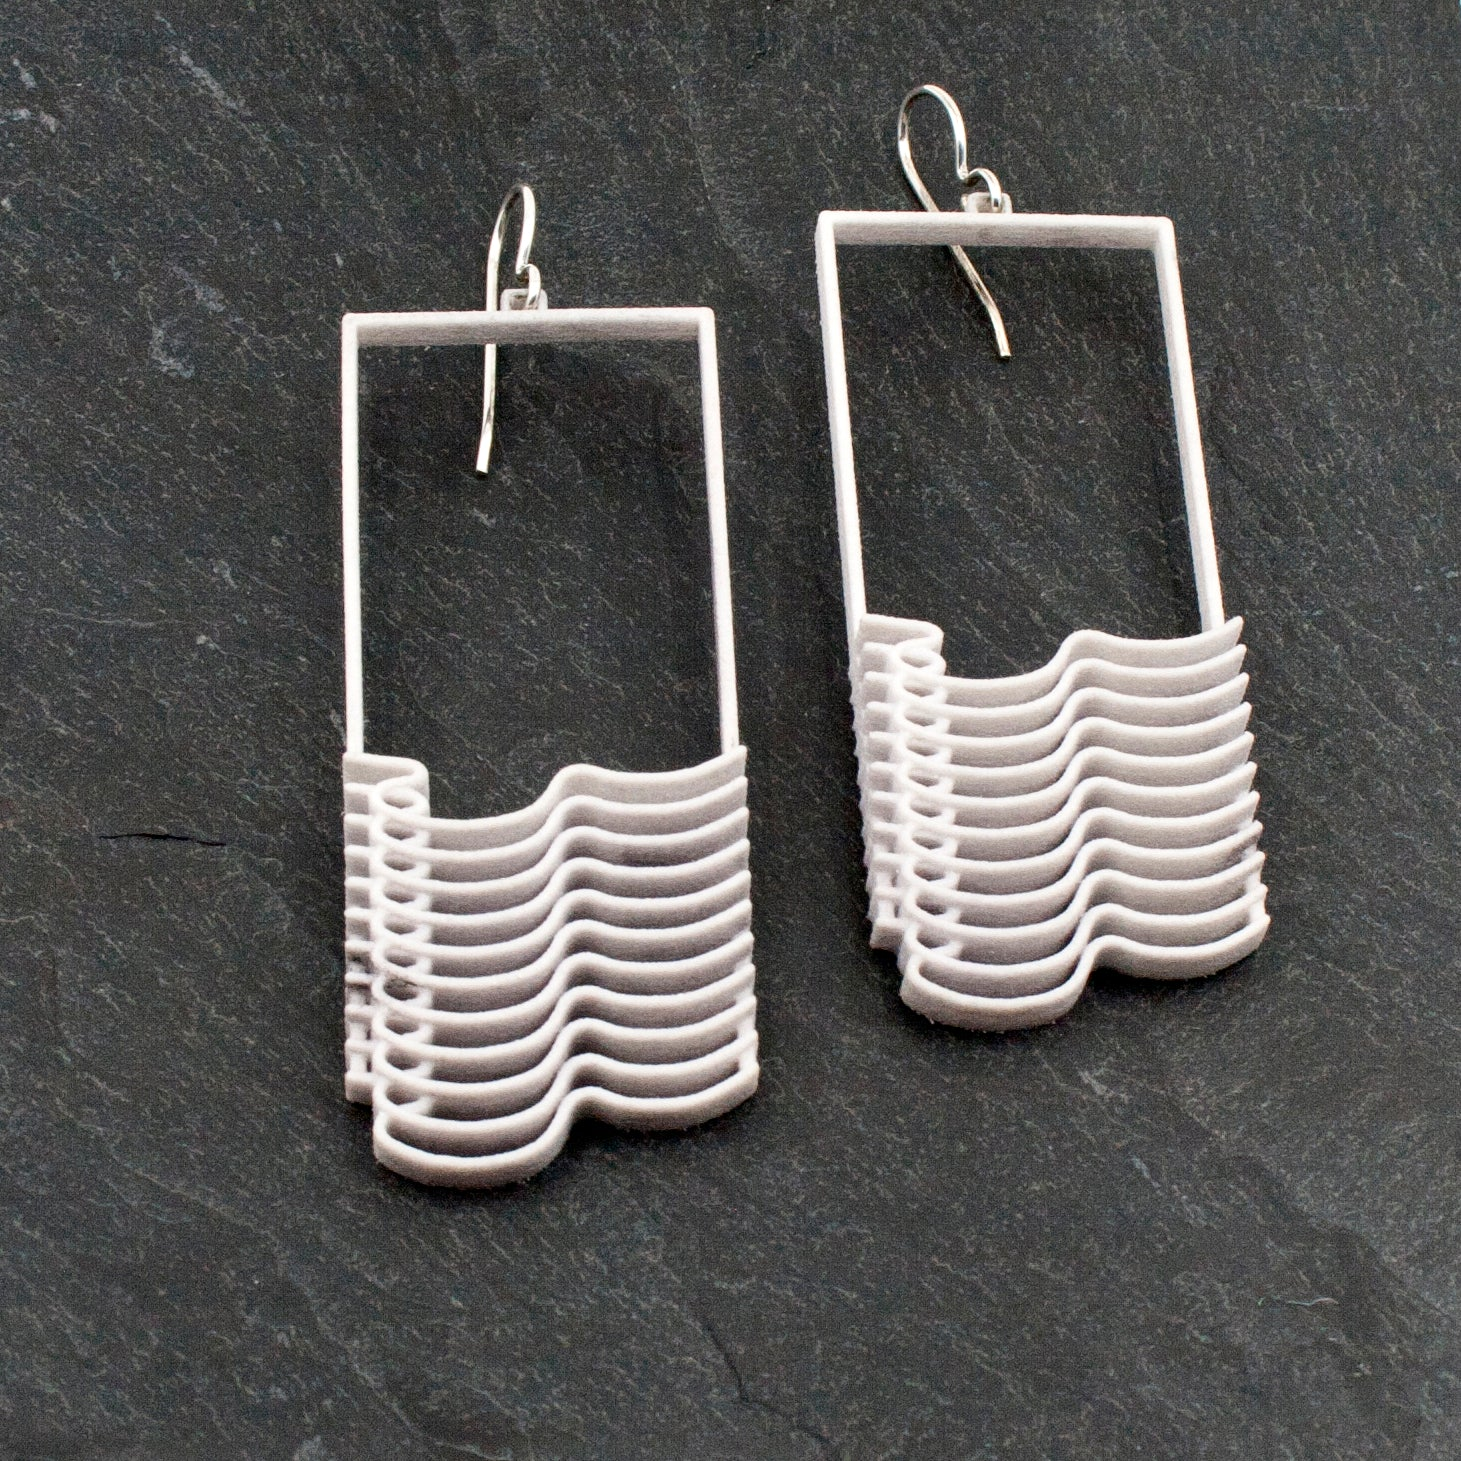 Plastic Waves Earrings